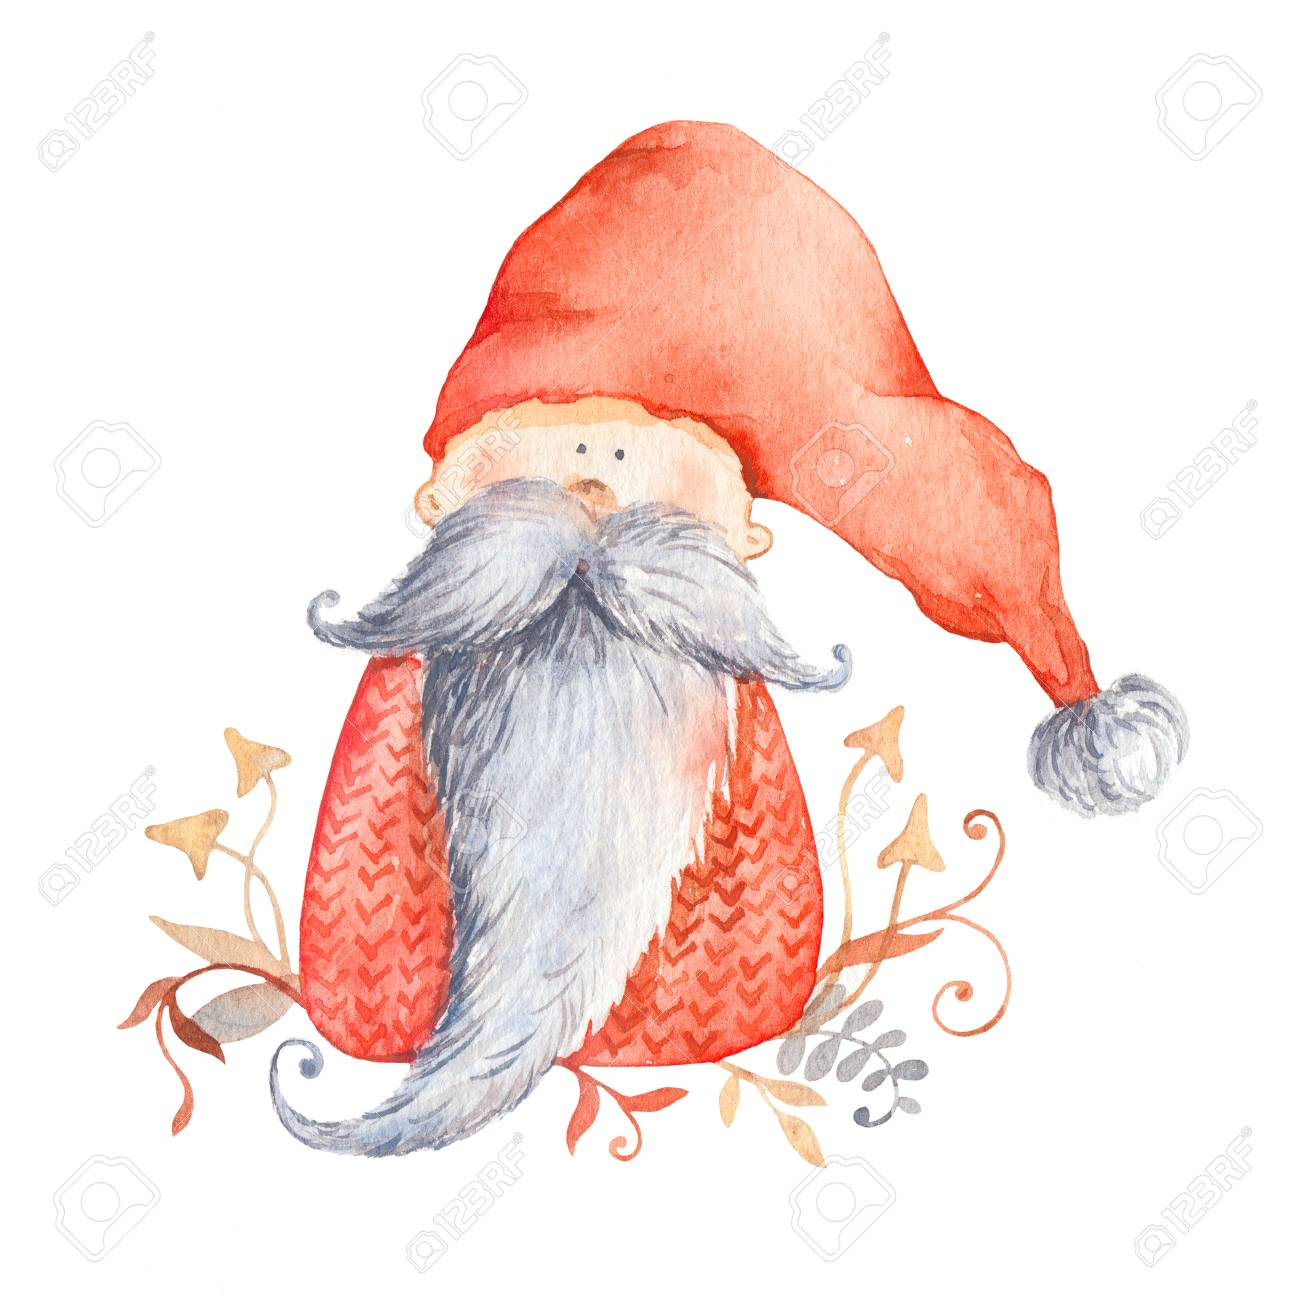 Christmas Gnome Drawing.Stock Illustration